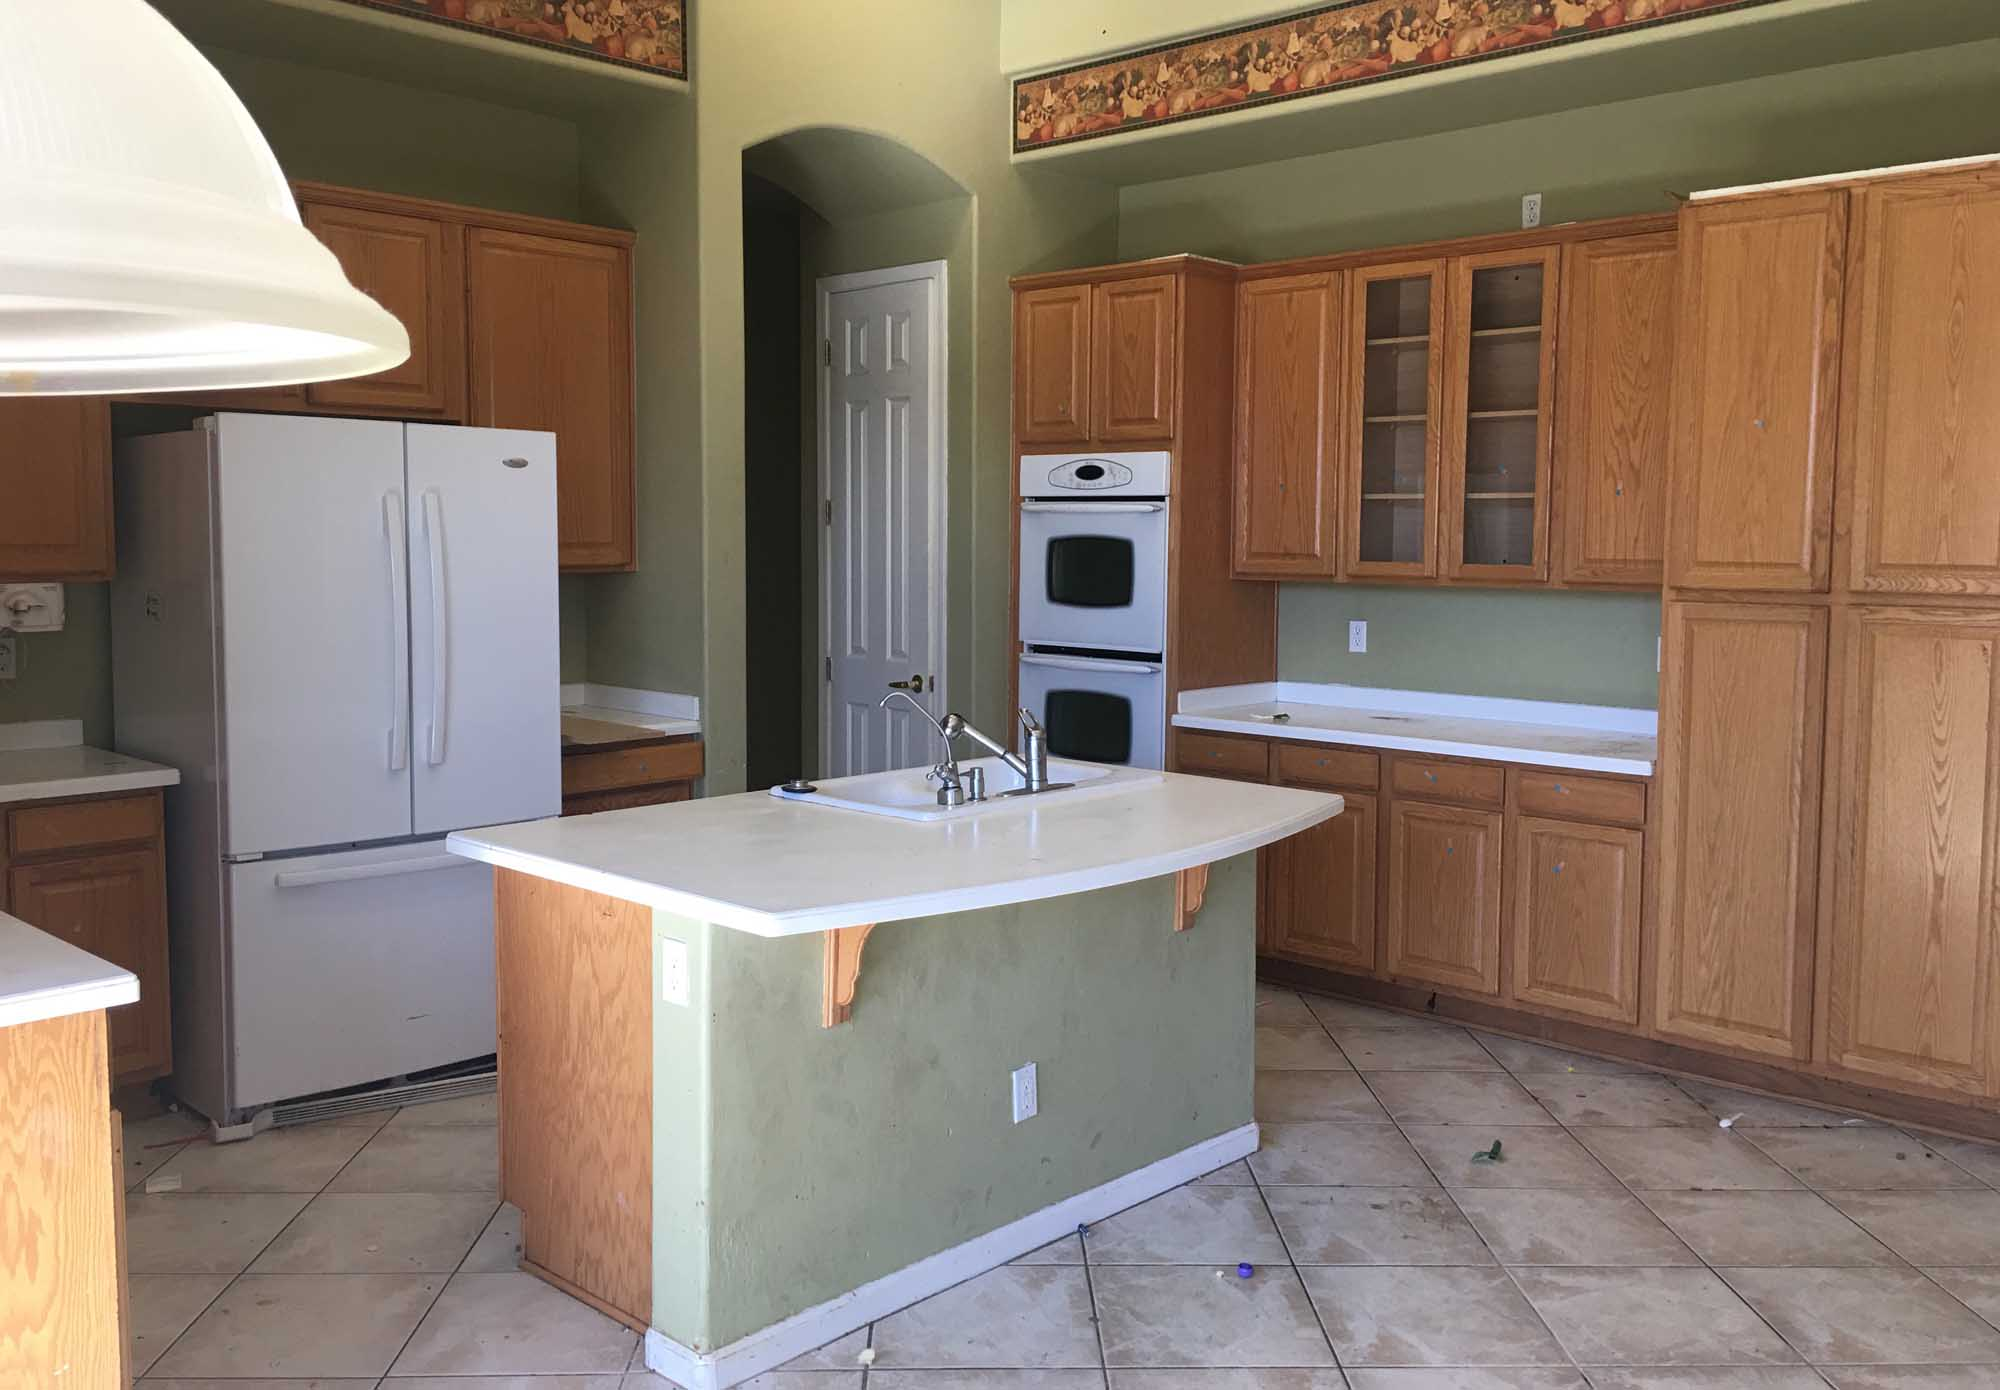 Old kitchen design large cabinet and white appliances